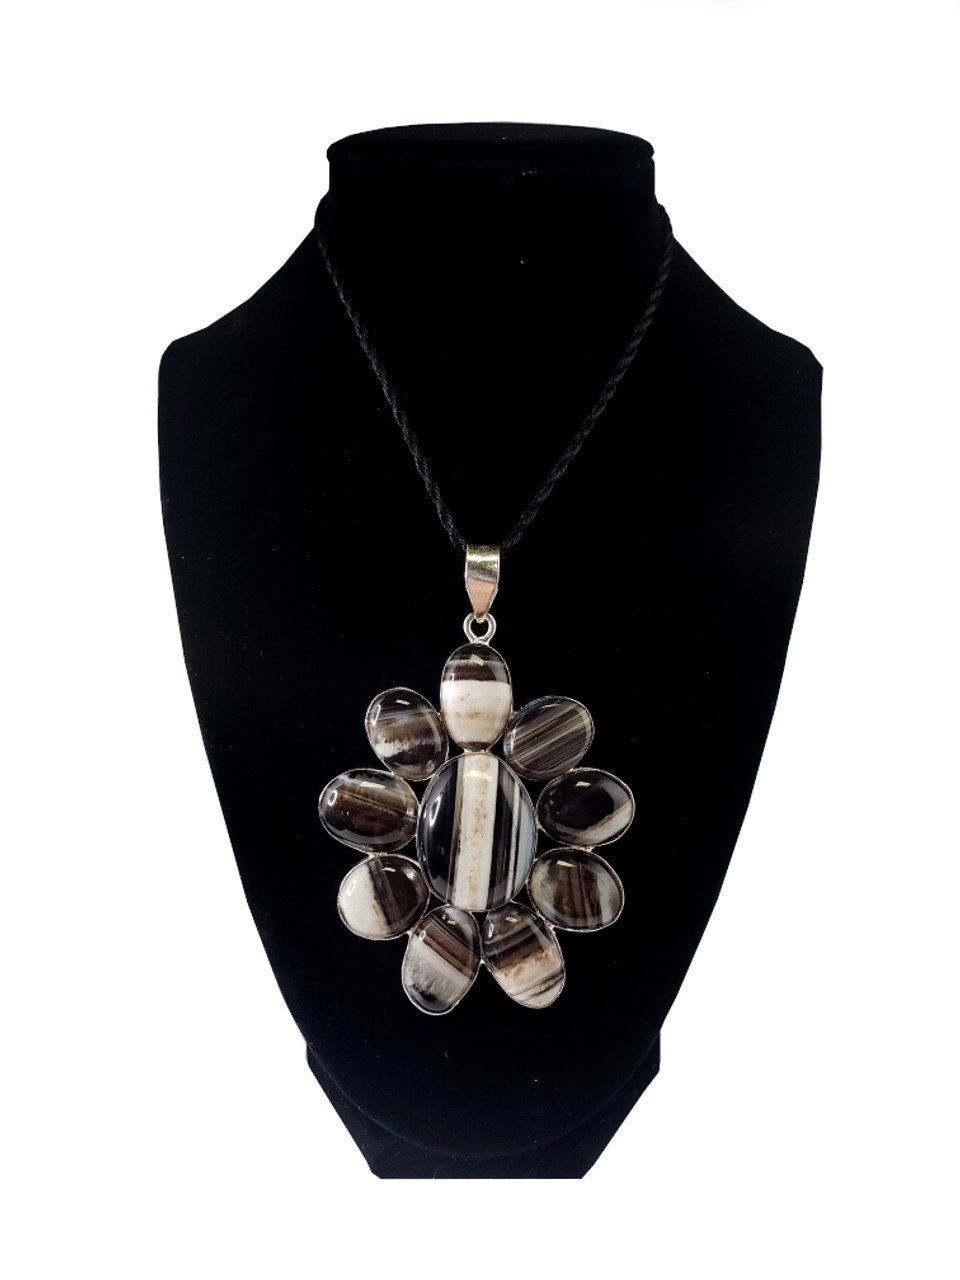 Express Yourself Banded Agate Pendant